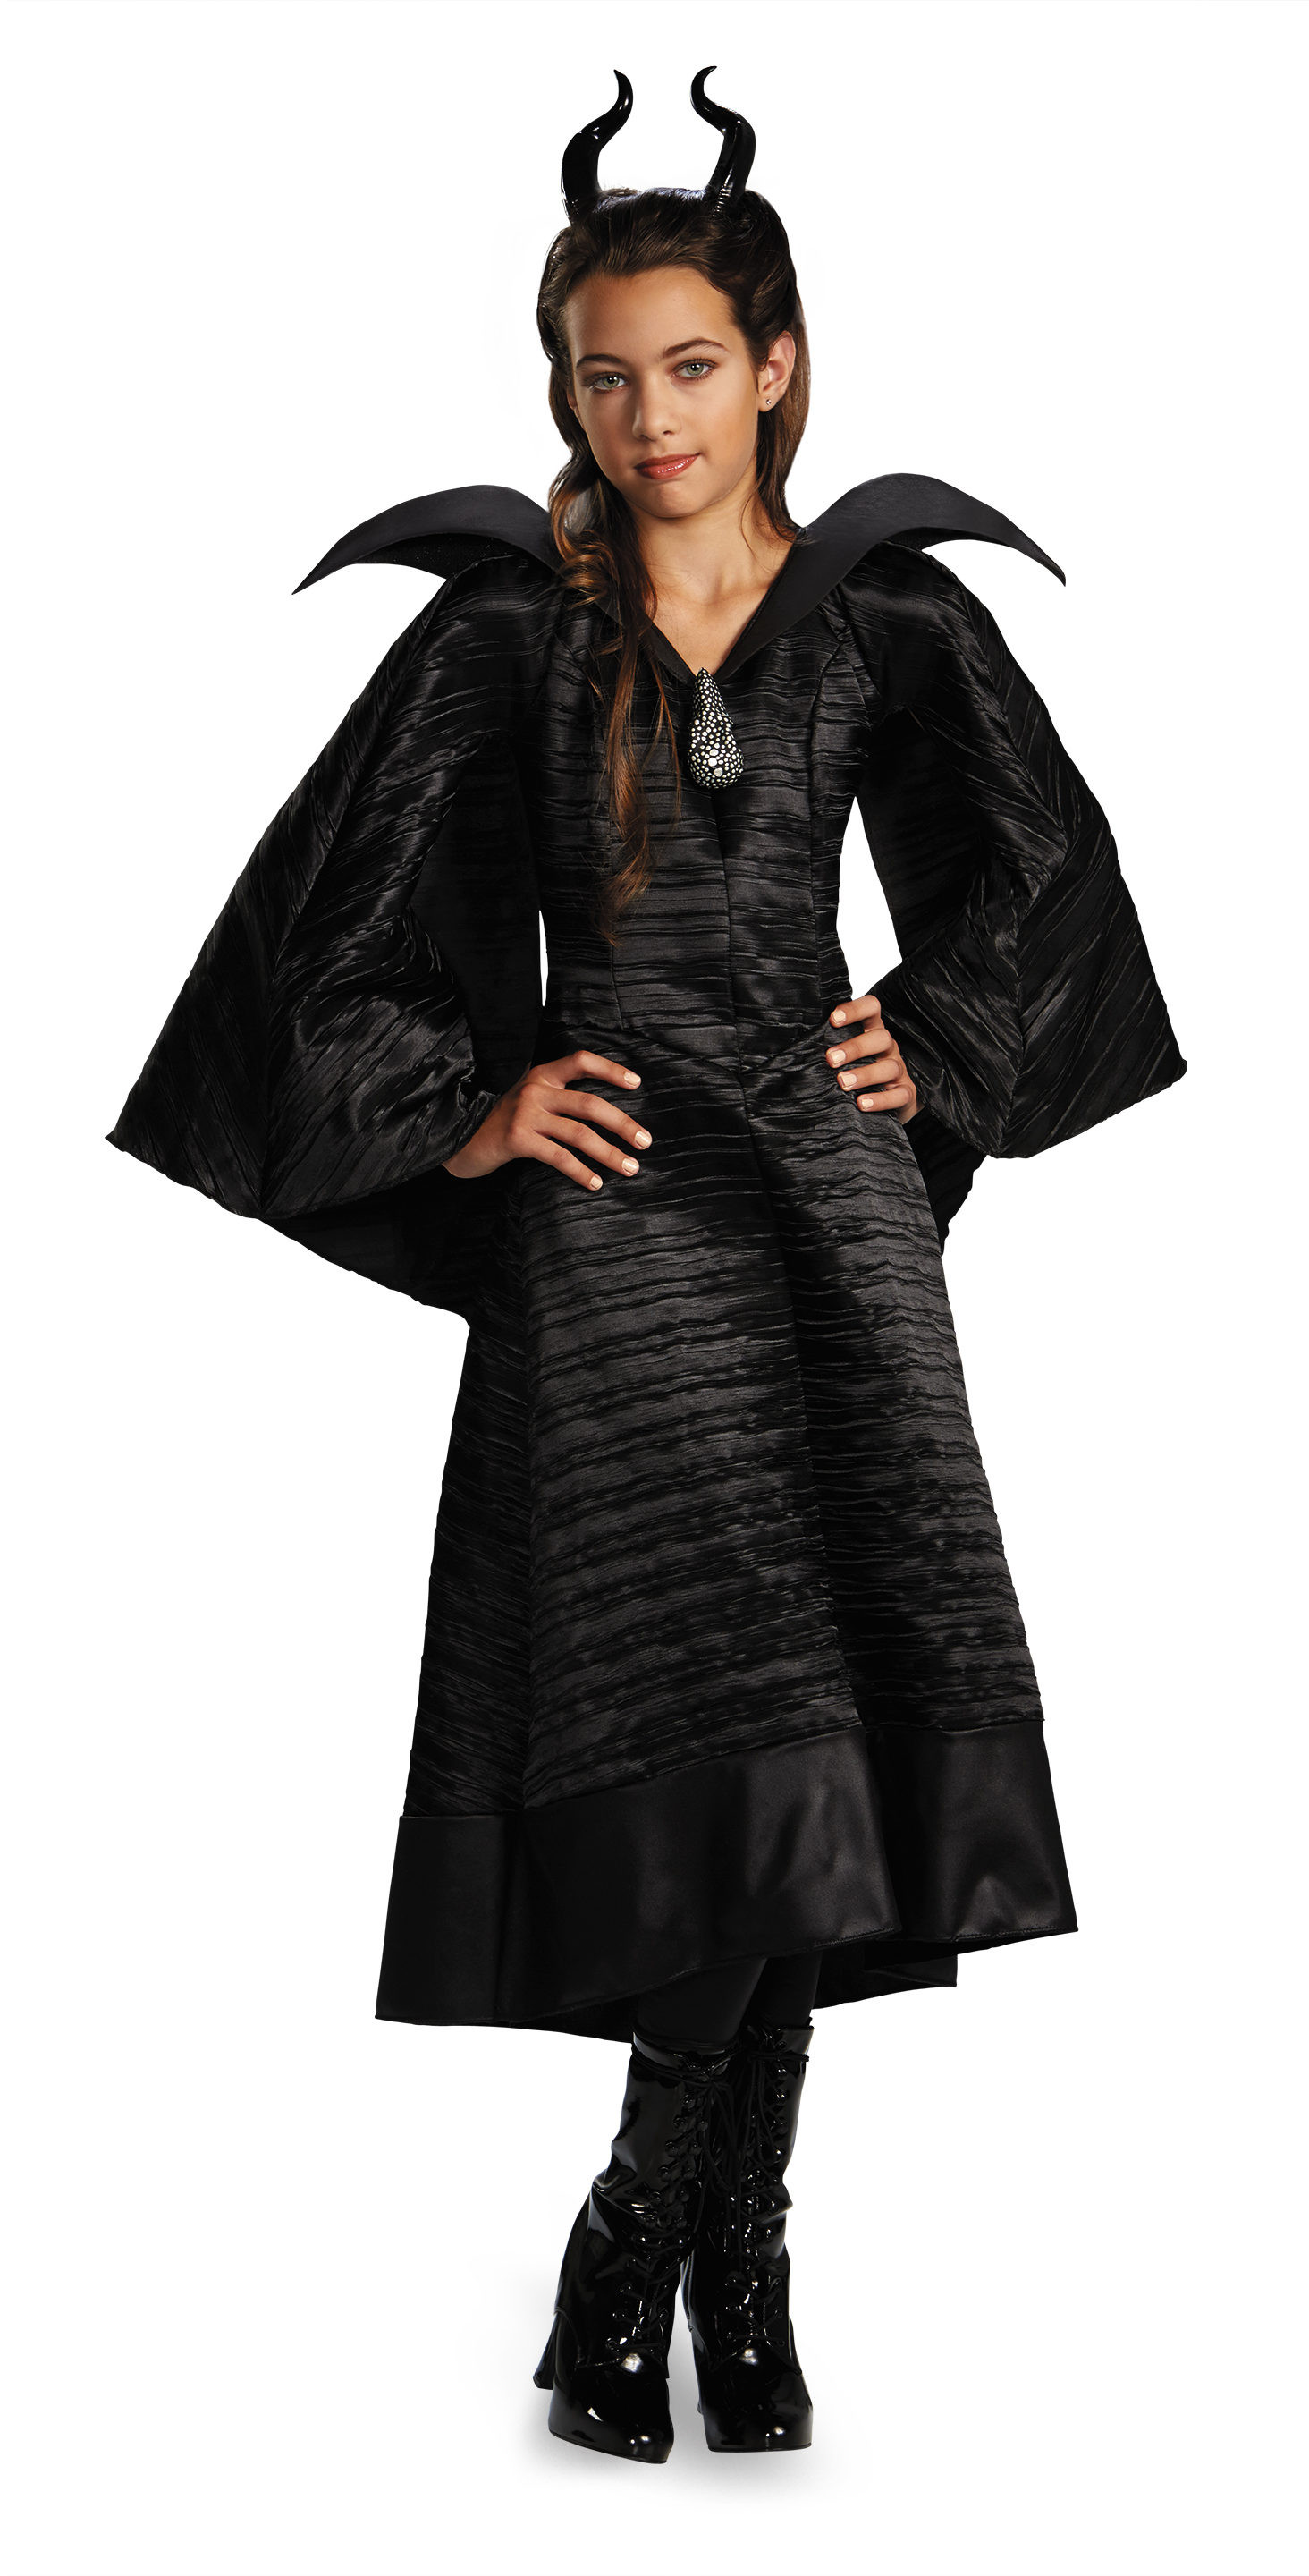 Best ideas about Maleficent DIY Costumes . Save or Pin Disney Maleficent Black Gown Kids Costume Mr Costumes Now.